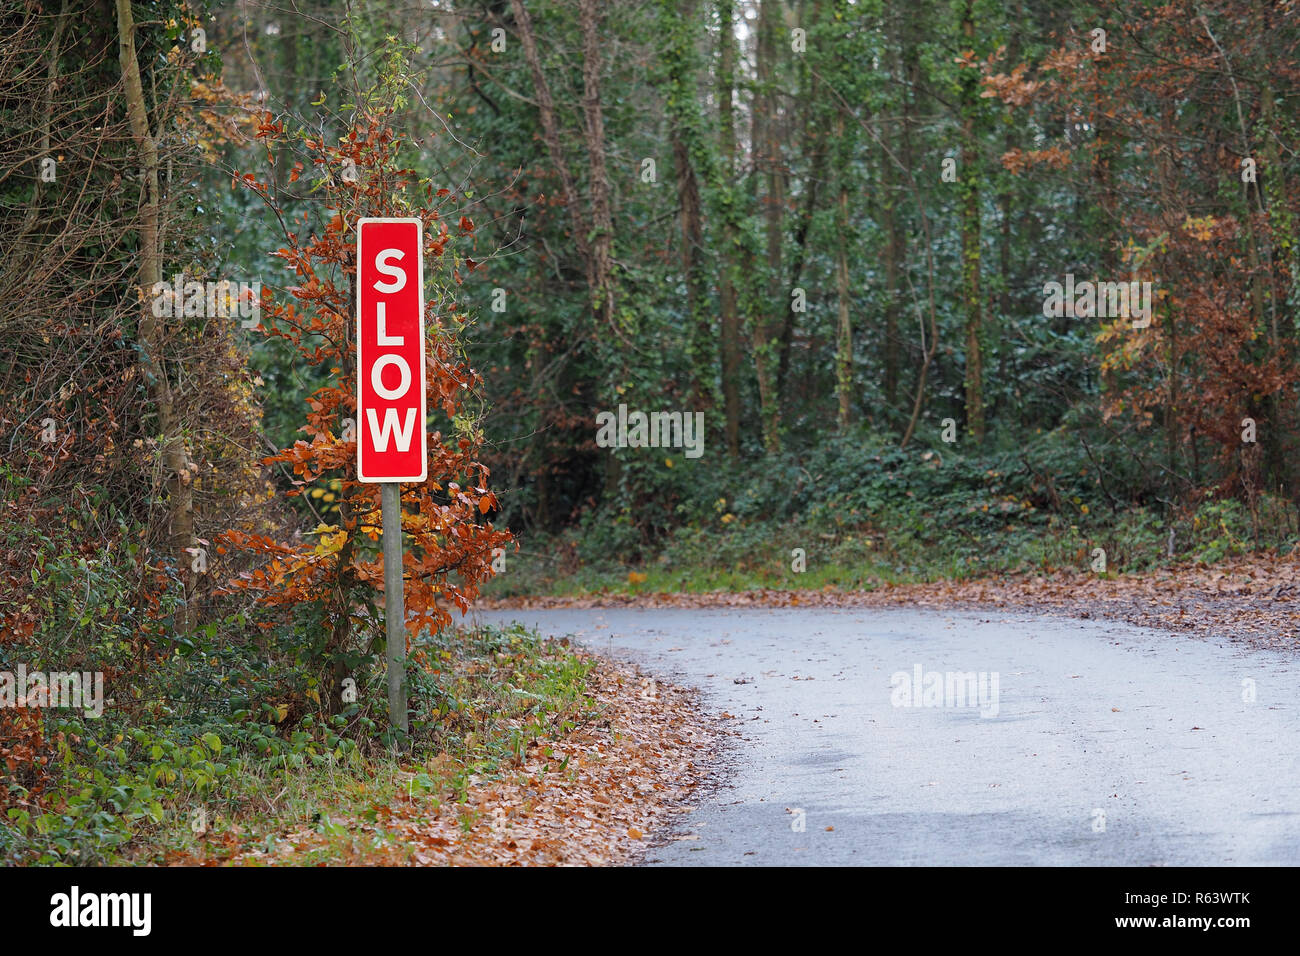 Sign advising motorists to drive slowly on narrow country lane. - Stock Image